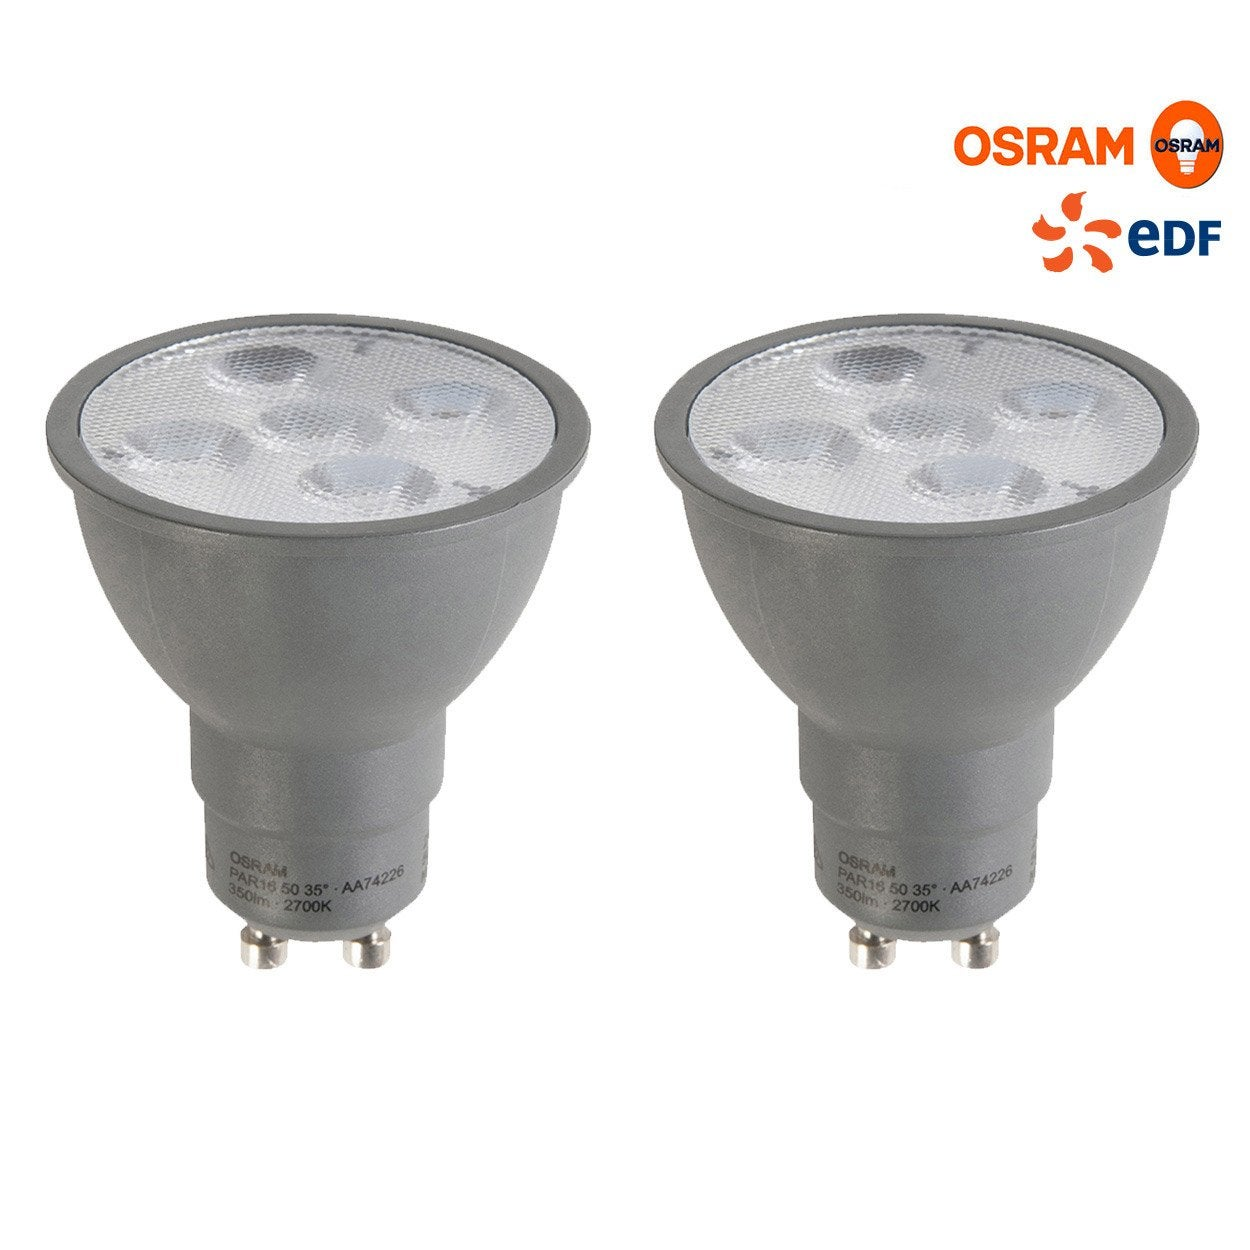 lot de 2 ampoules r flecteurs led 5w osram gu10 lumi re chaude env 2700 k leroy merlin. Black Bedroom Furniture Sets. Home Design Ideas